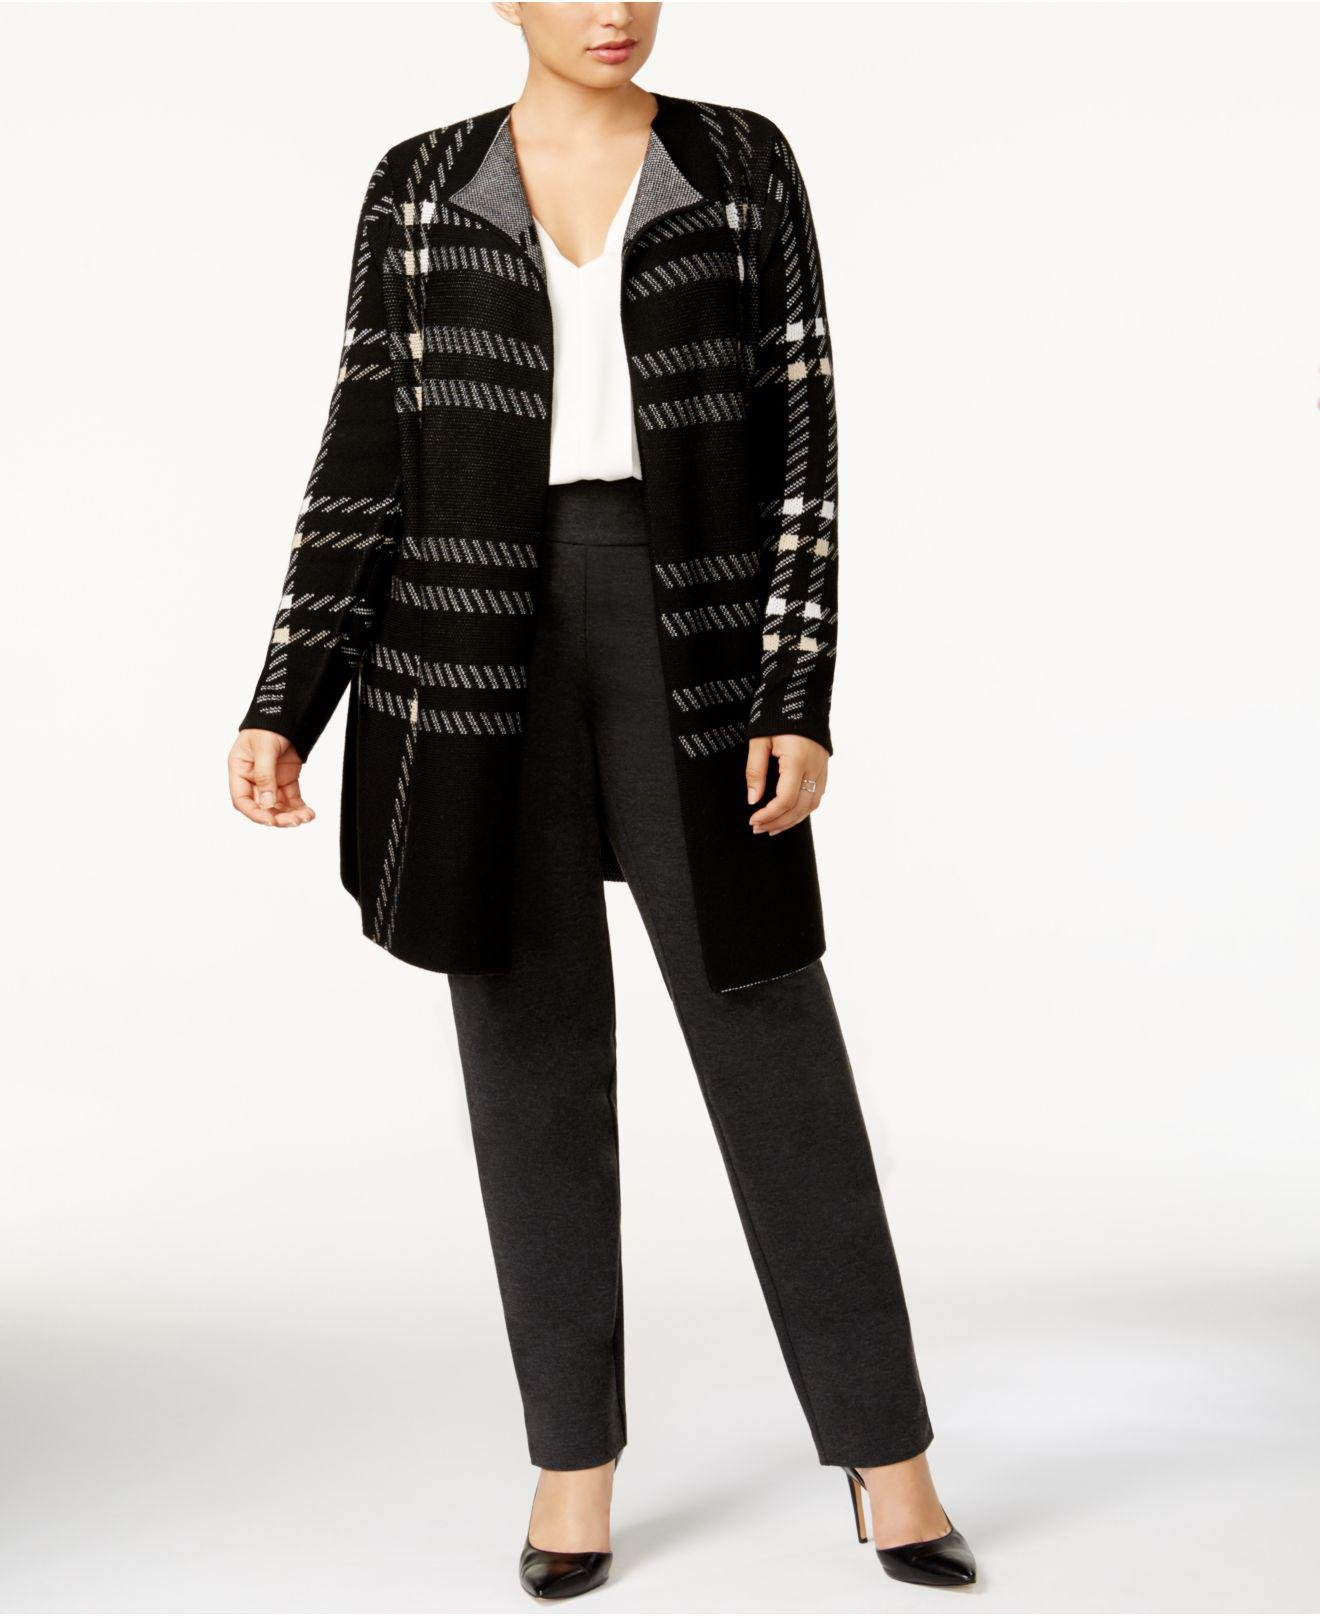 Charter club Plus Size Plaid Open-front Duster Cardigan in Black ...